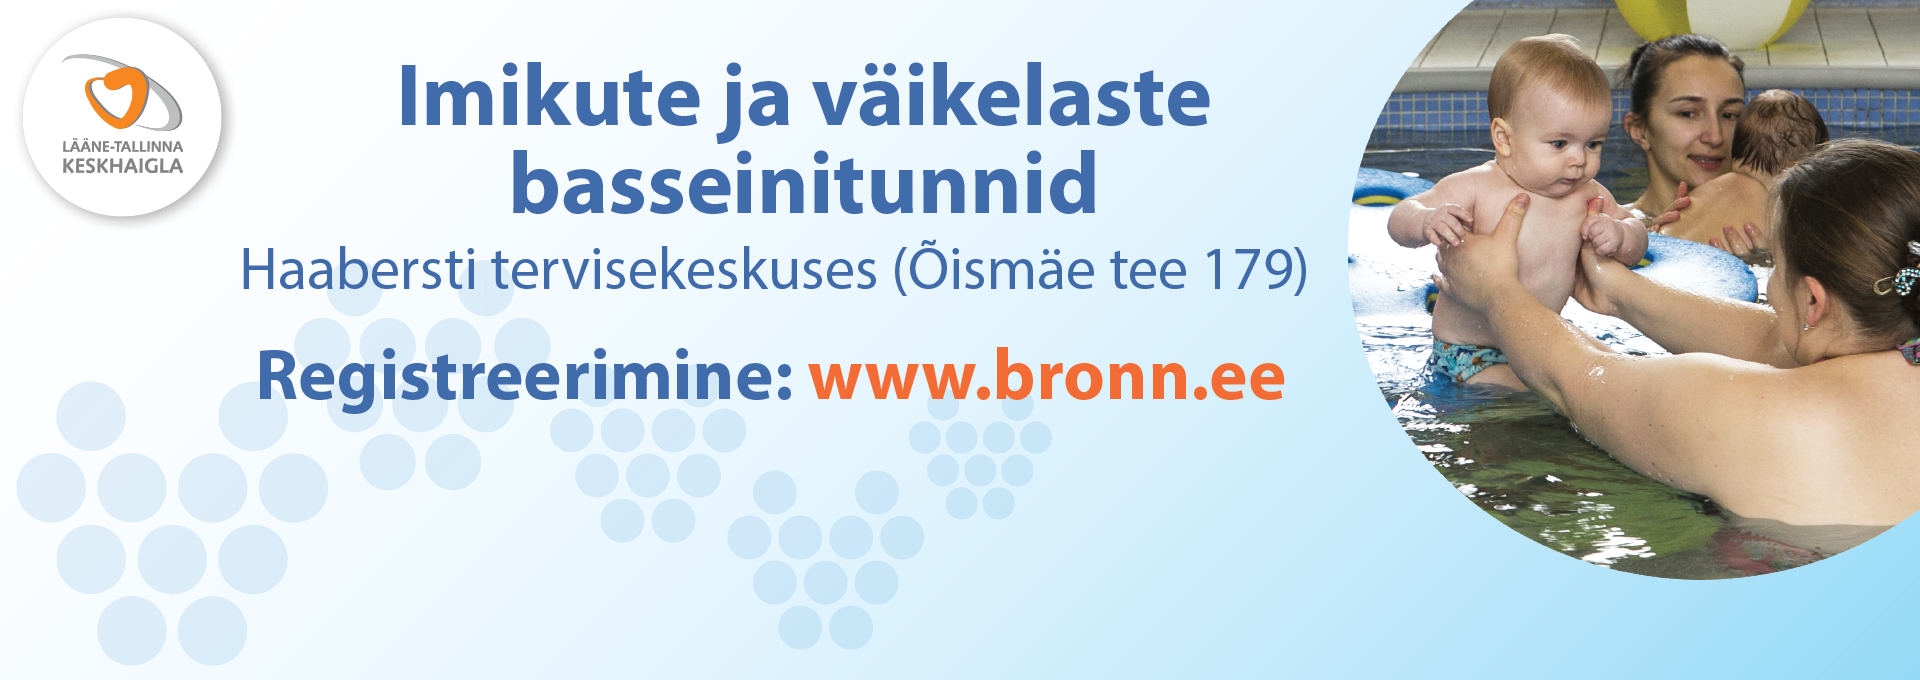 slider_titade-ujutamine_bronn_10sept2018